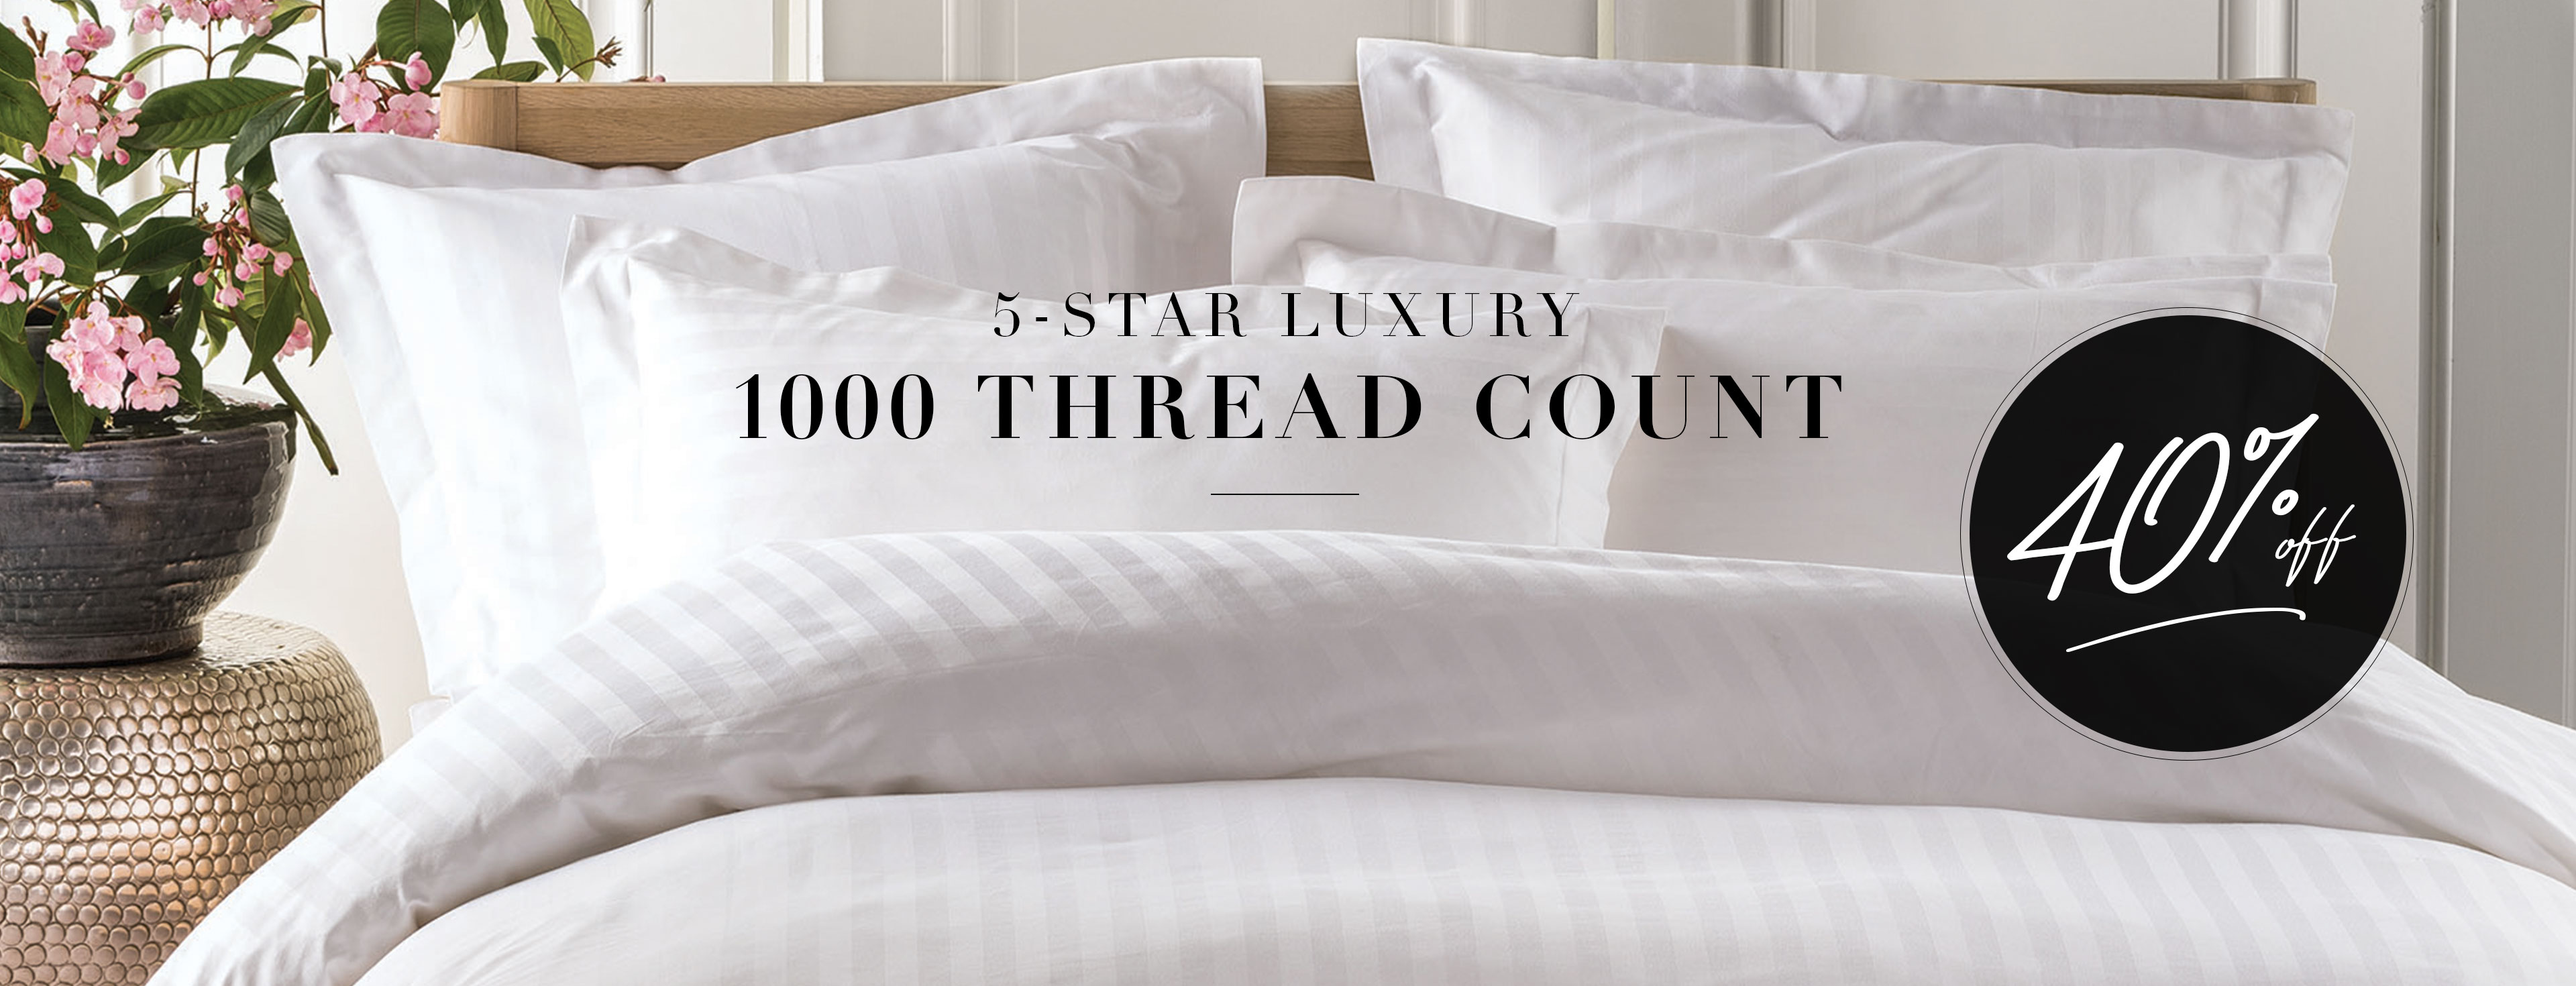 40% Off 1000 Thread Count